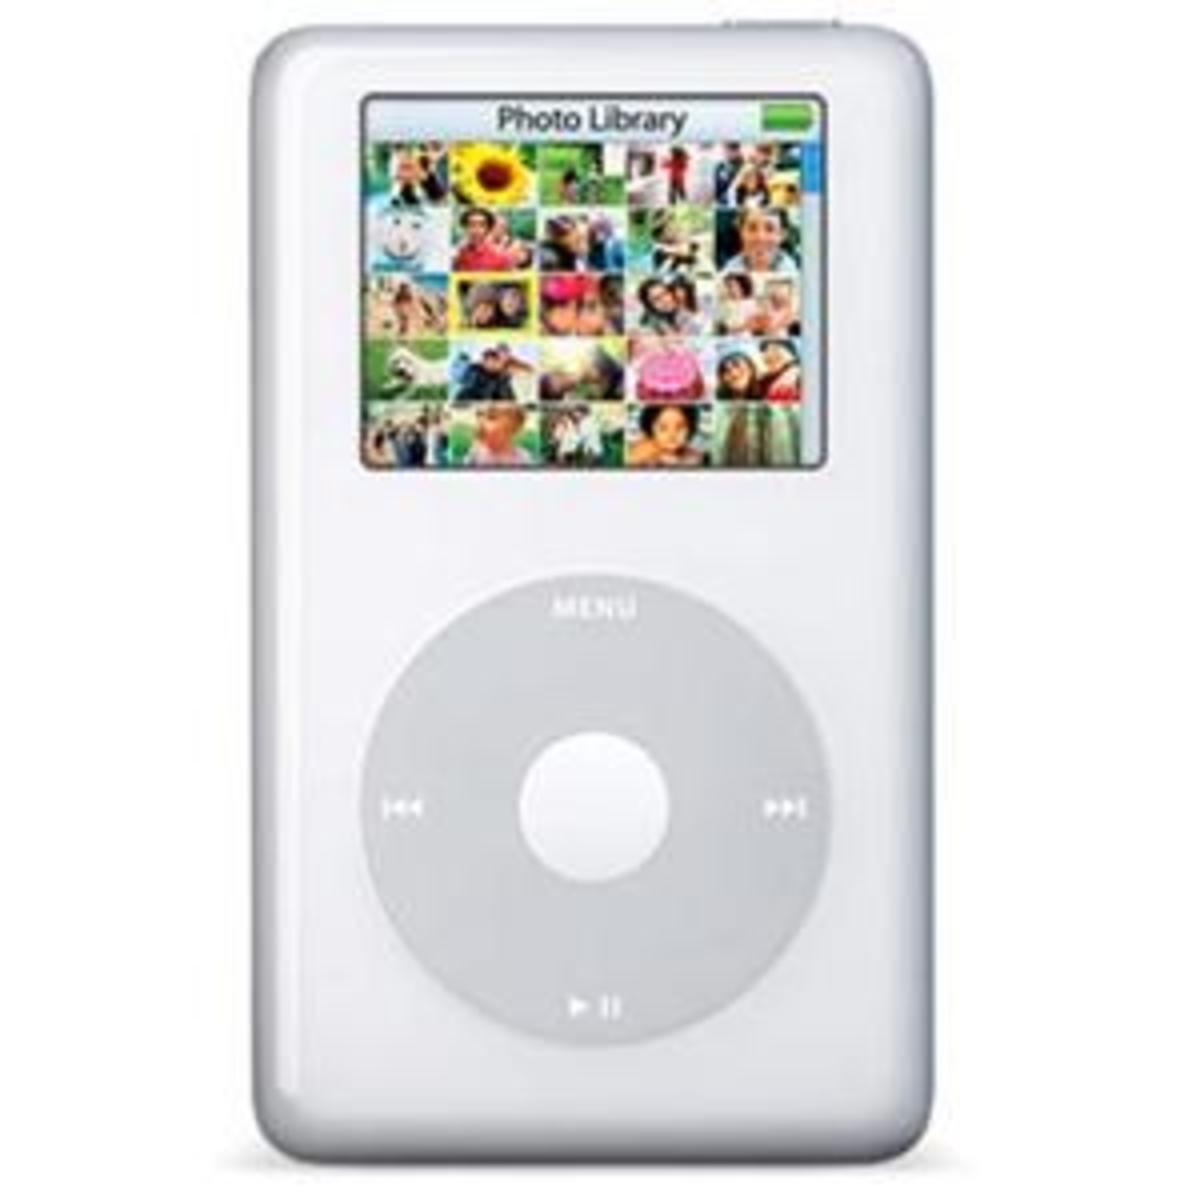 iPod Classic 4th Gen Photo